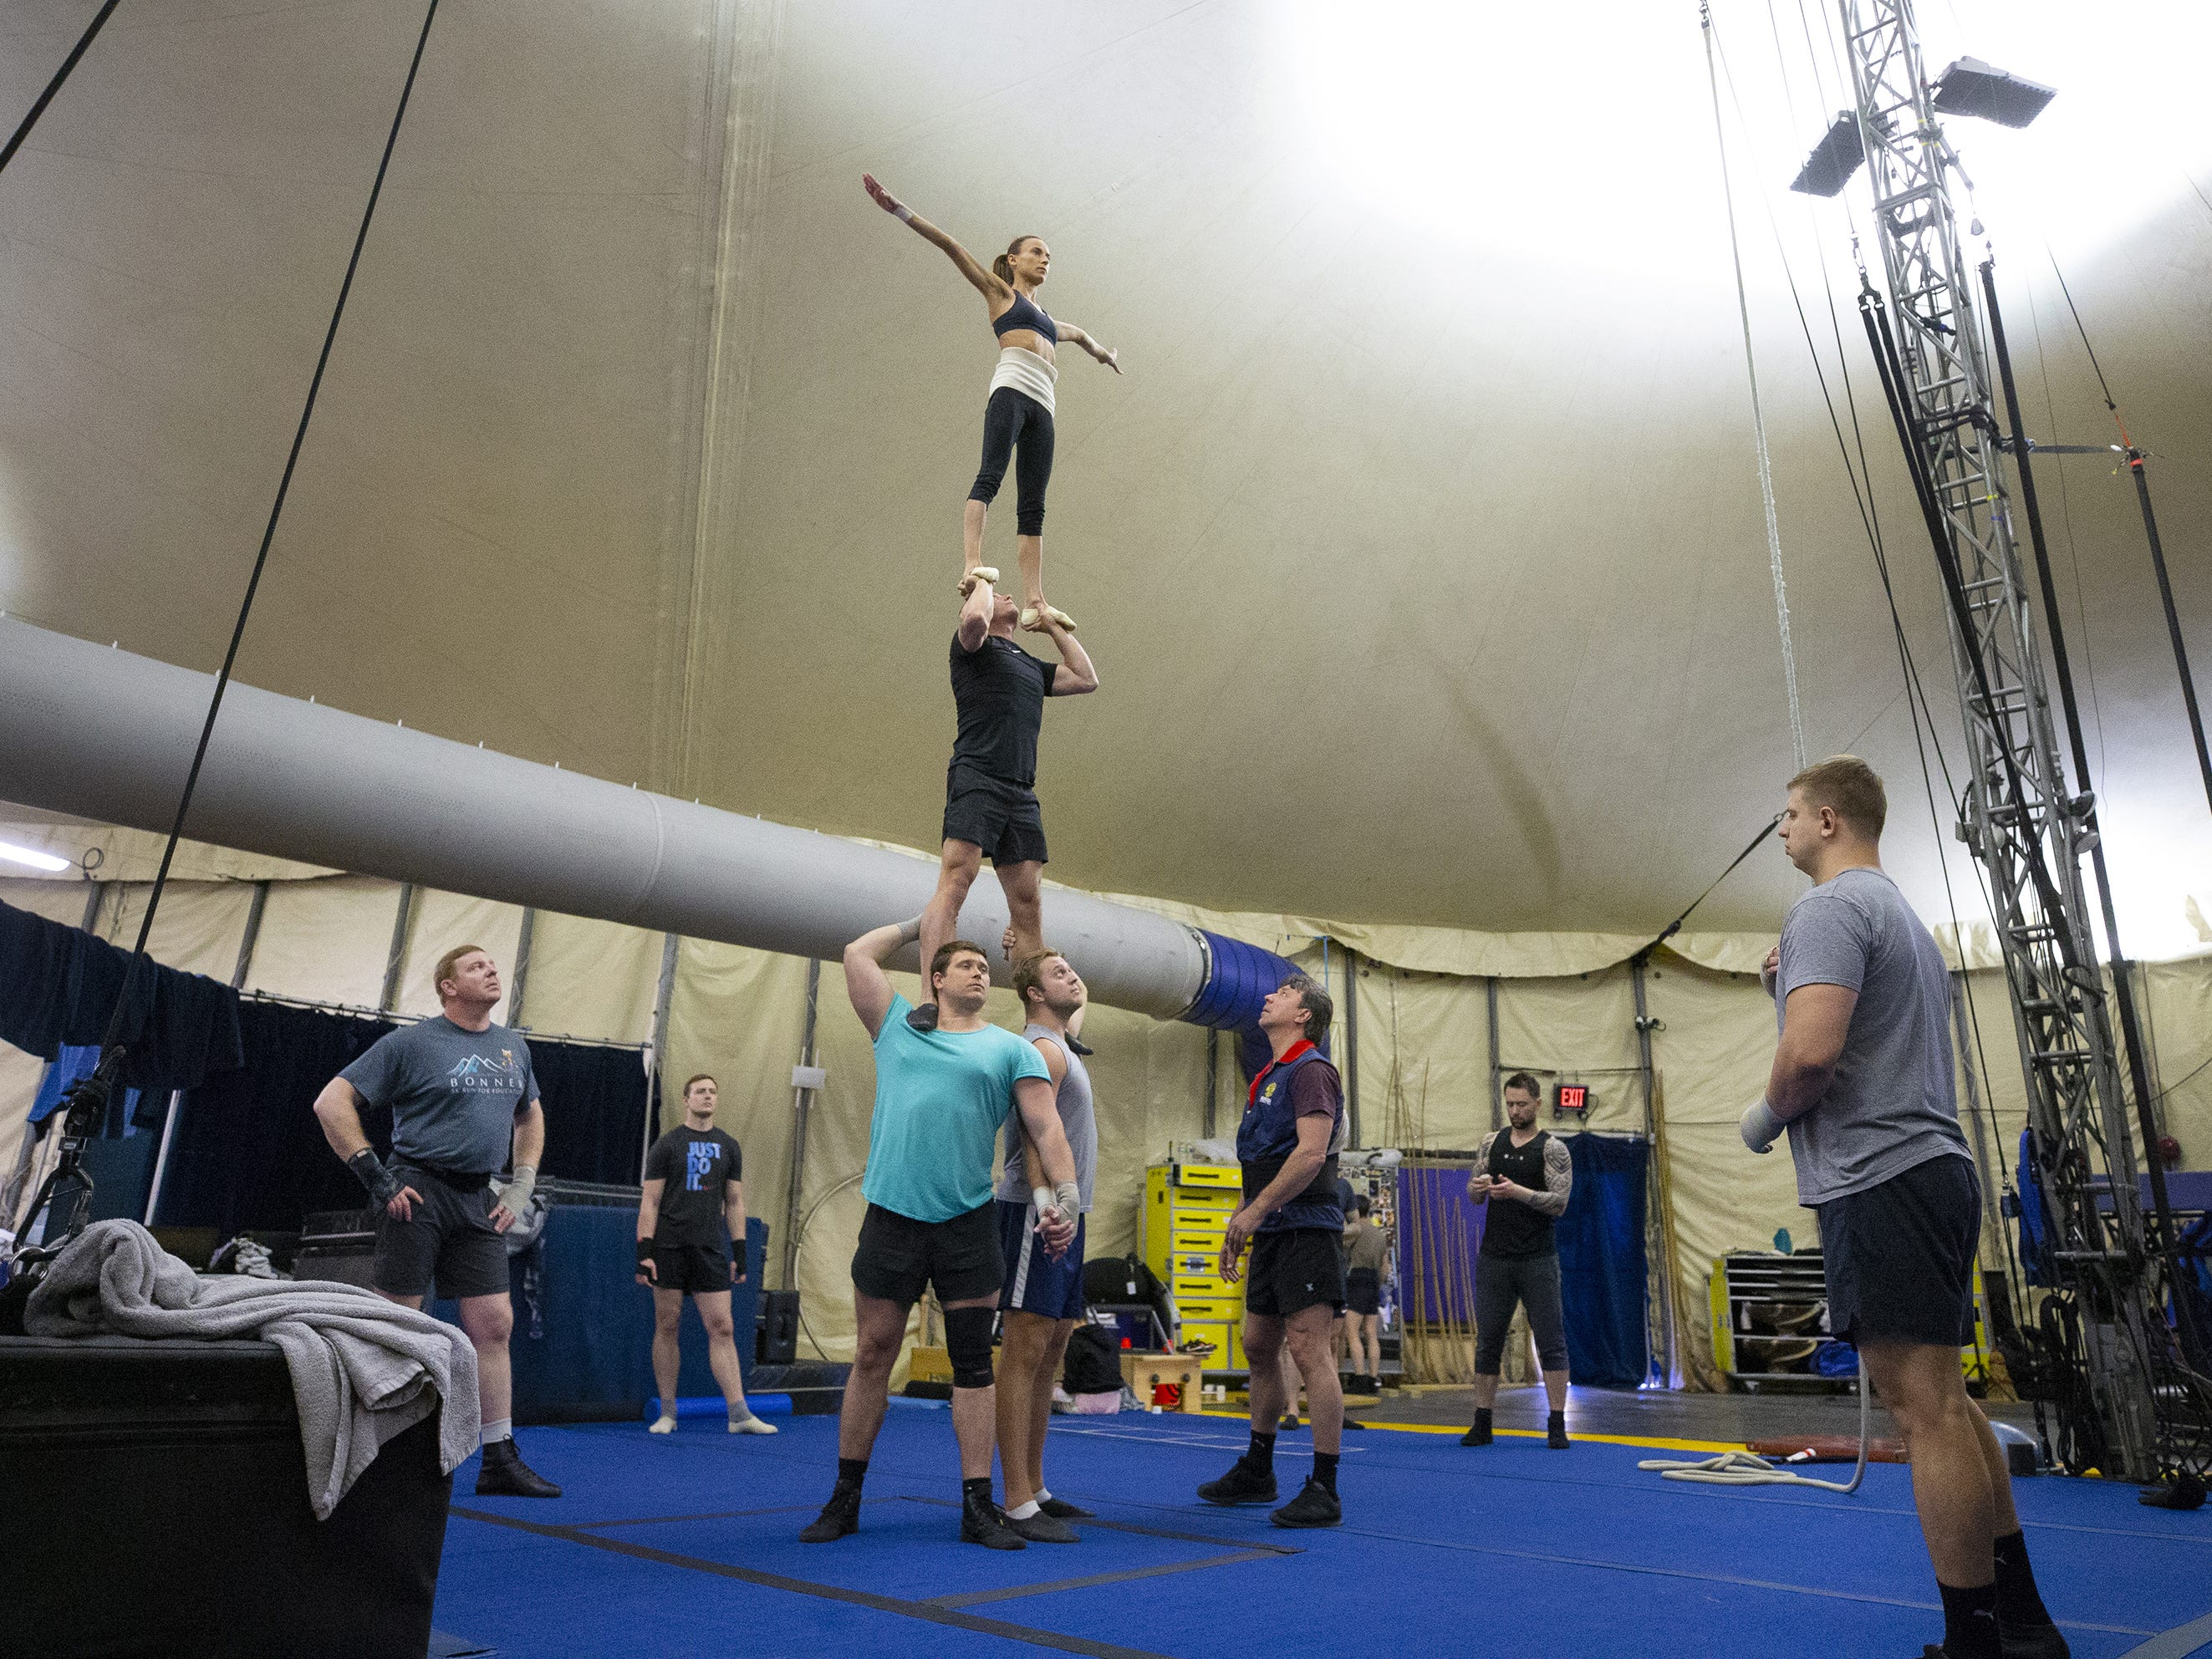 Performers train for the Cirque du Soleil's big-top show, Amaluna, at State Farm Stadium in Glendale.